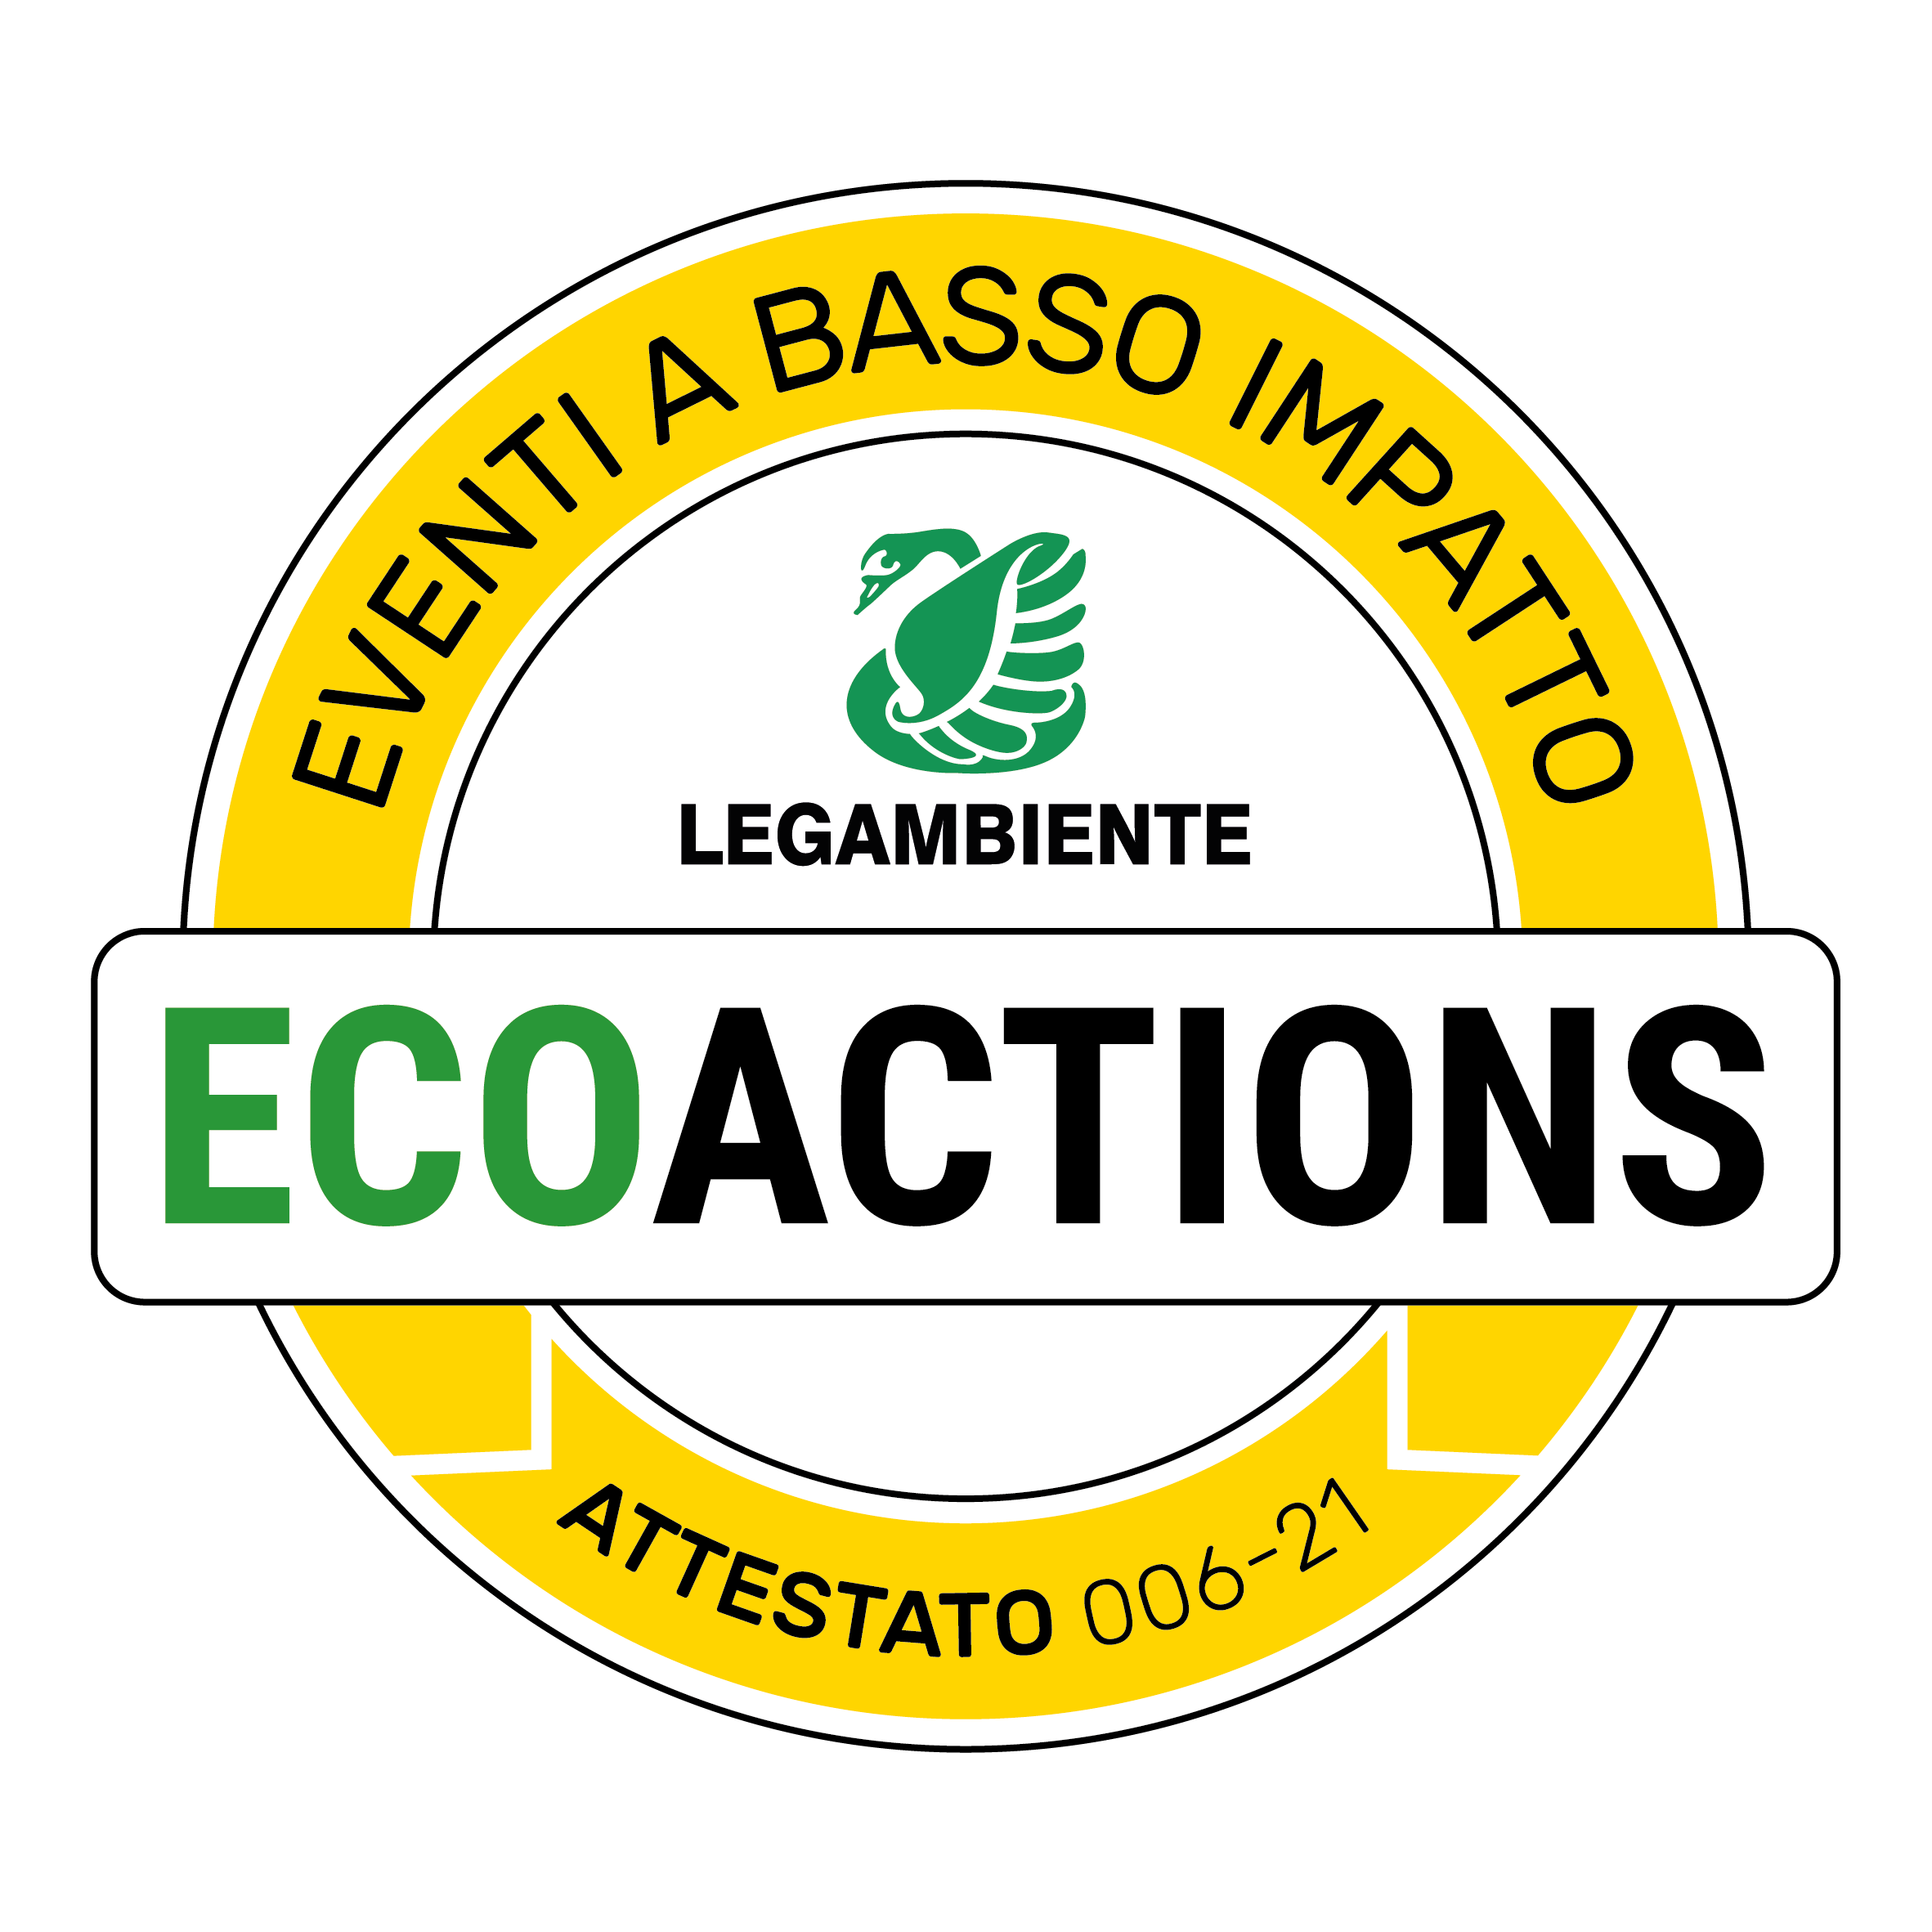 VibramUTLO obteined the EcoActions attestation!